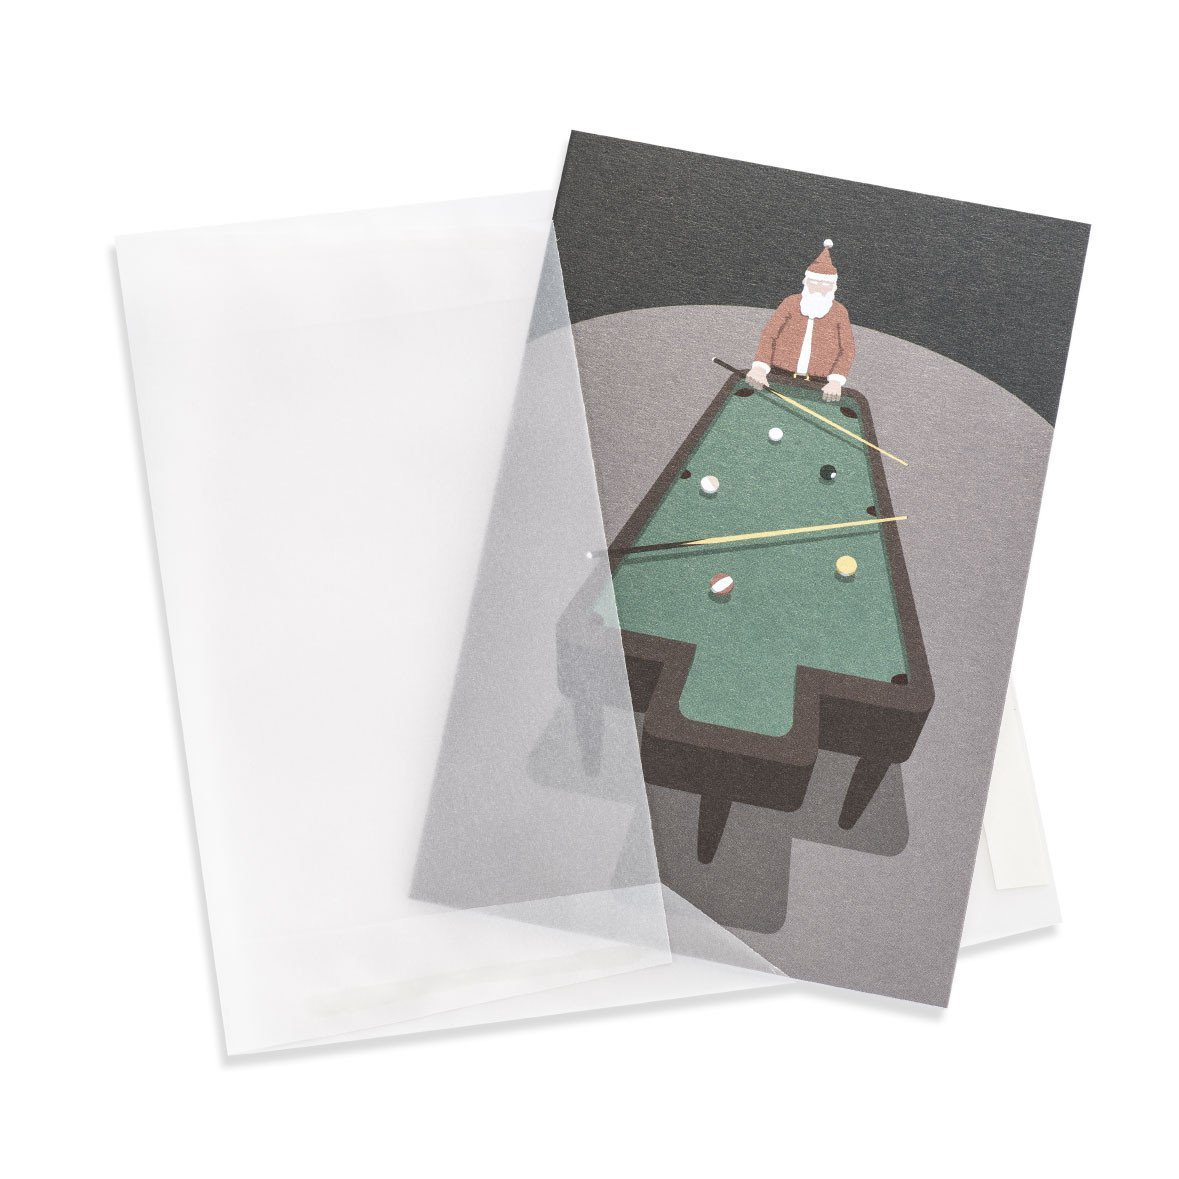 Santa's Pool Table Greeting Card - Christmas Cards - MULTIFOLIA ATELIER di Rita Girola - Naiise